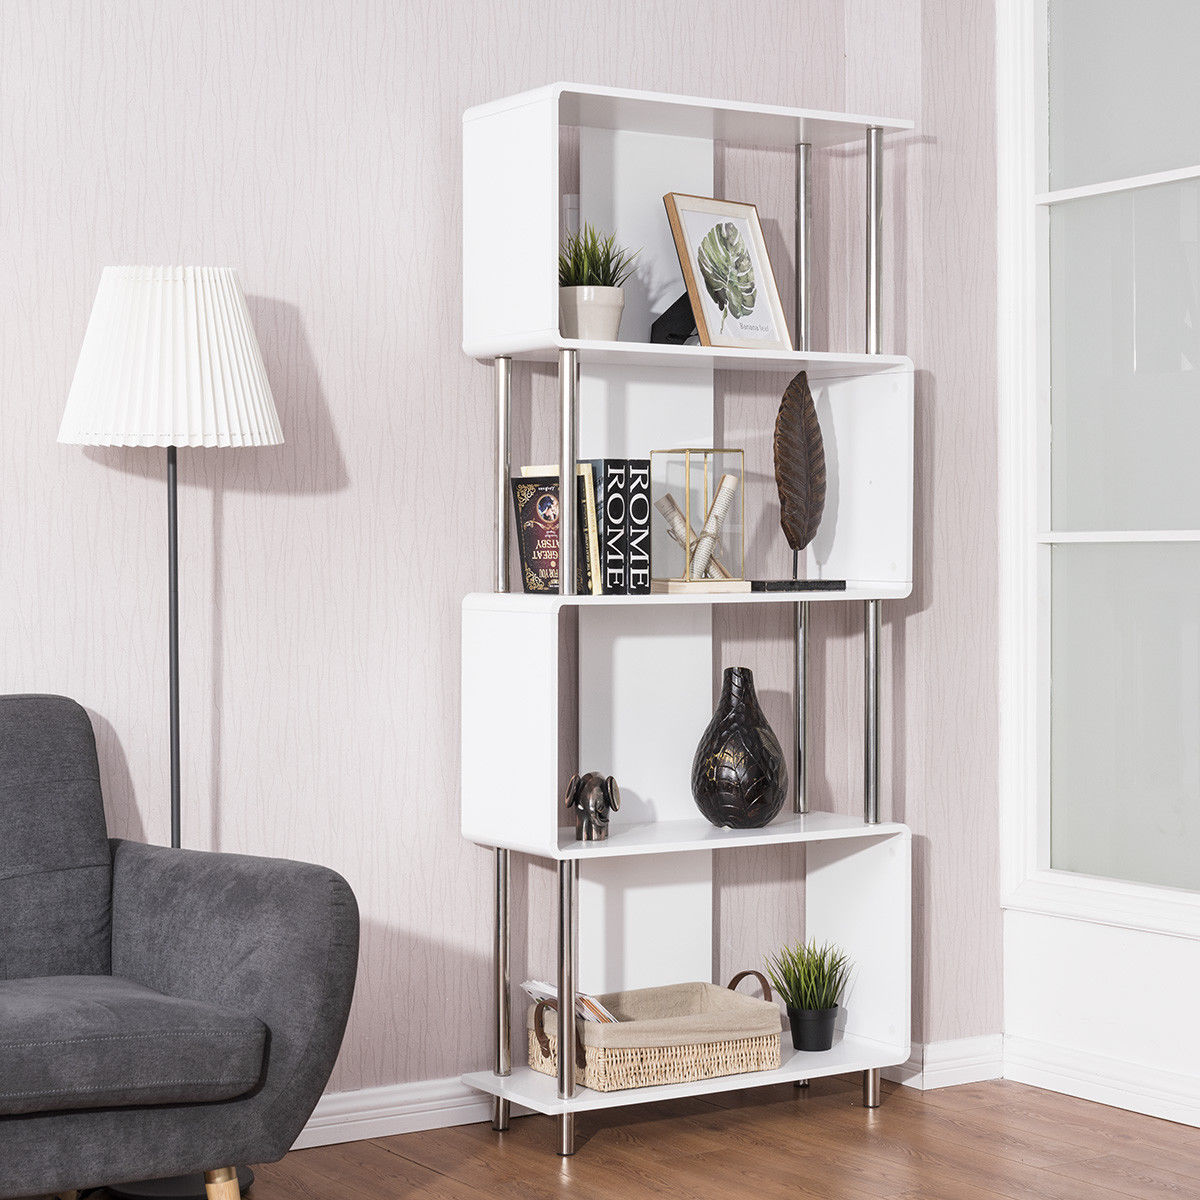 bookshelf in living room storage table for giantex industrial style 4 shelf modern bookcase display unit white home furniture hw56698 bookcases from on